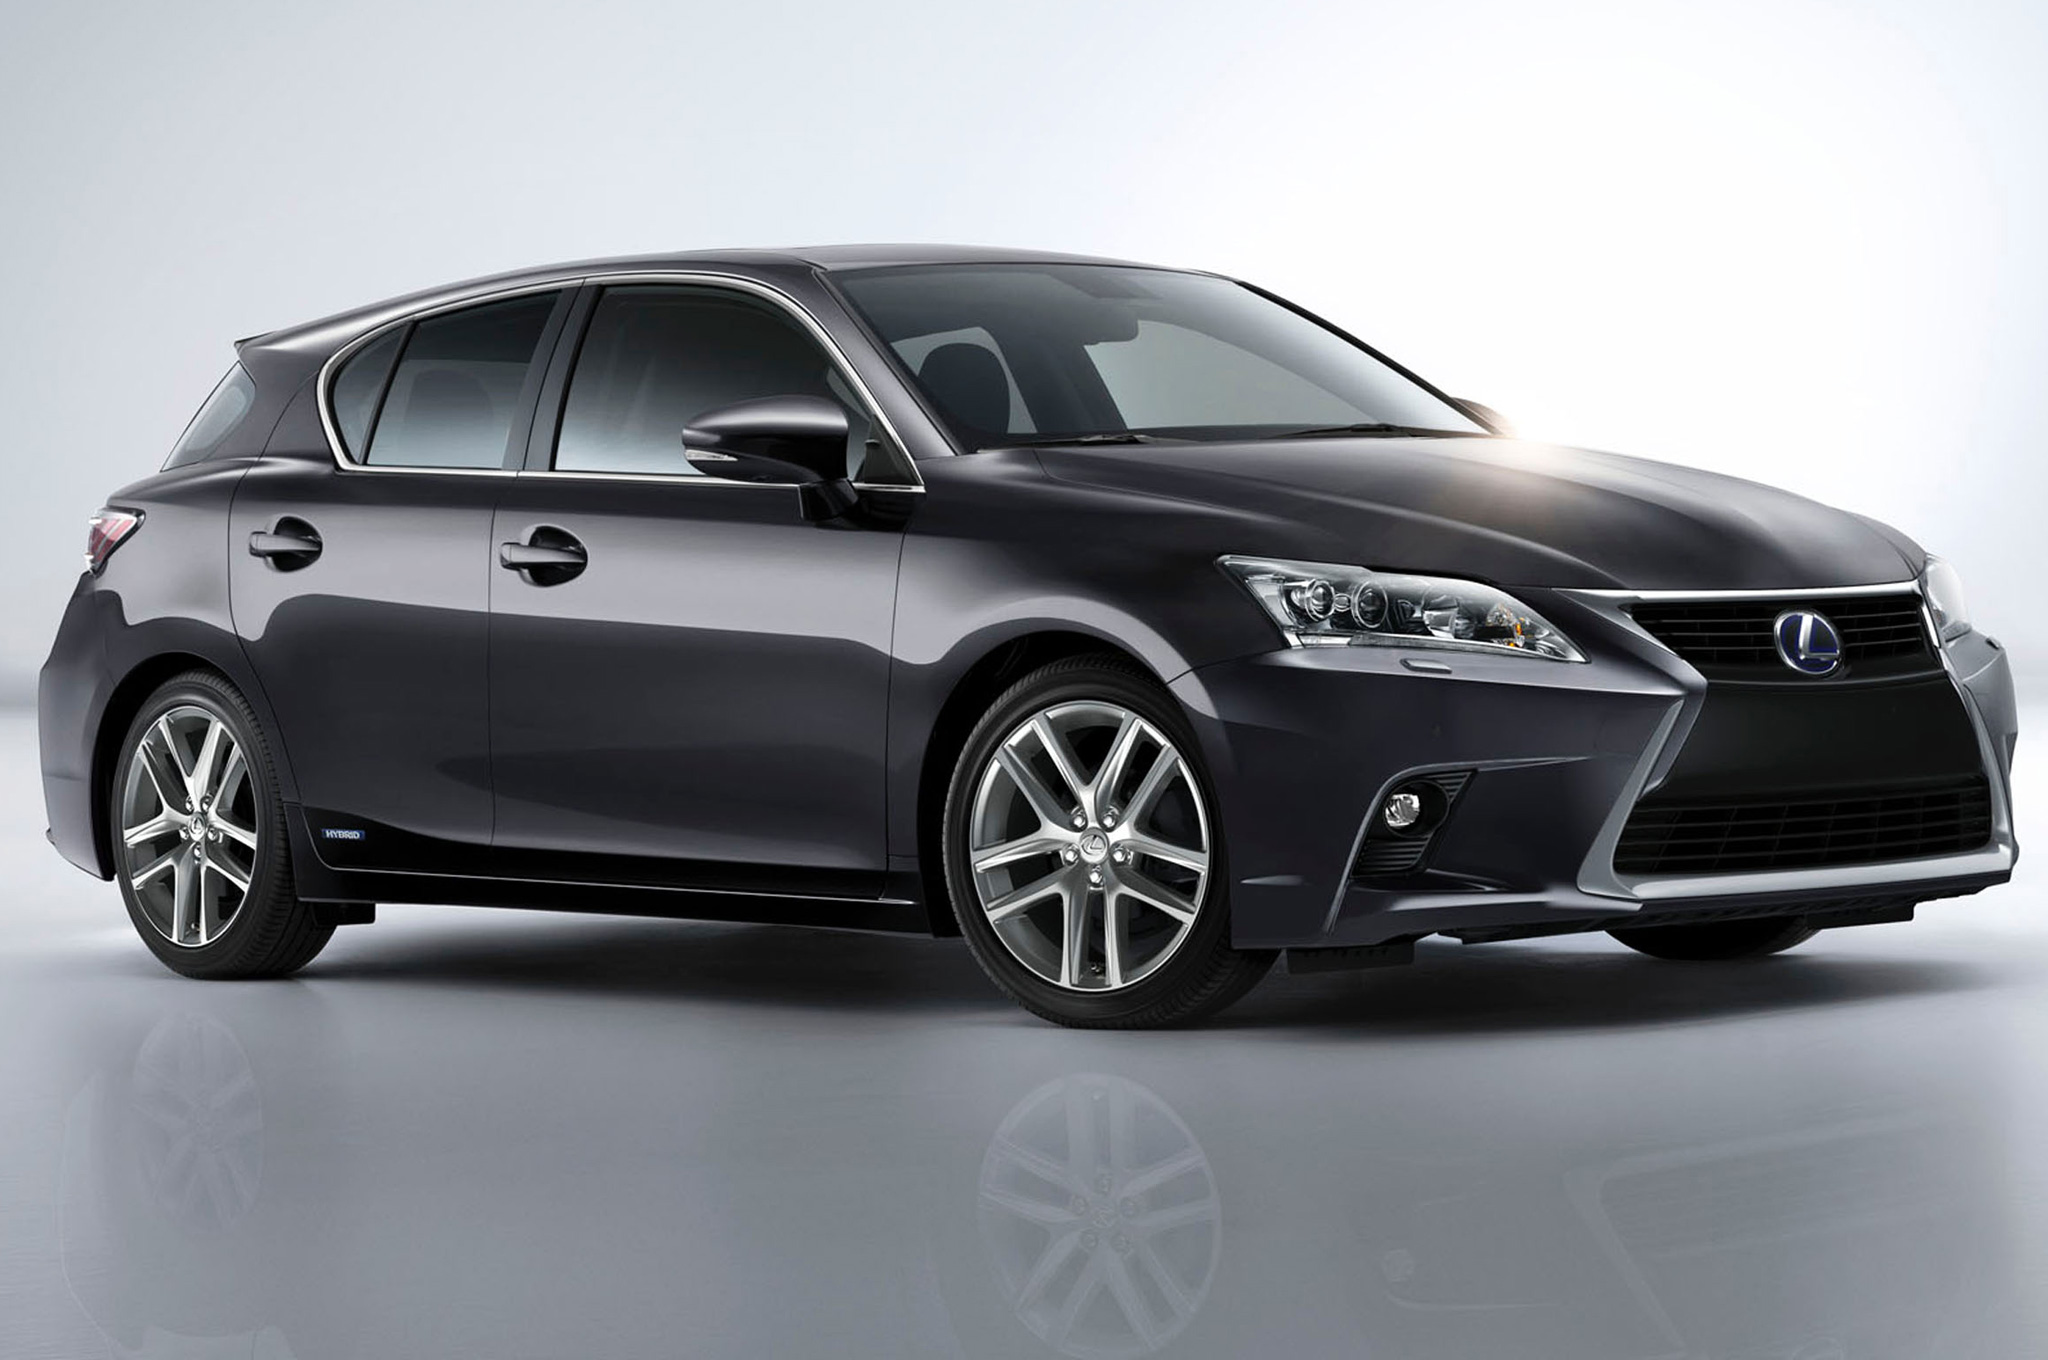 https://enthusiastnetwork.s3.amazonaws.com/uploads/sites/5/2013/11/2014-Lexus-CT-200h-front-side-view.jpg?impolicy=entryimage